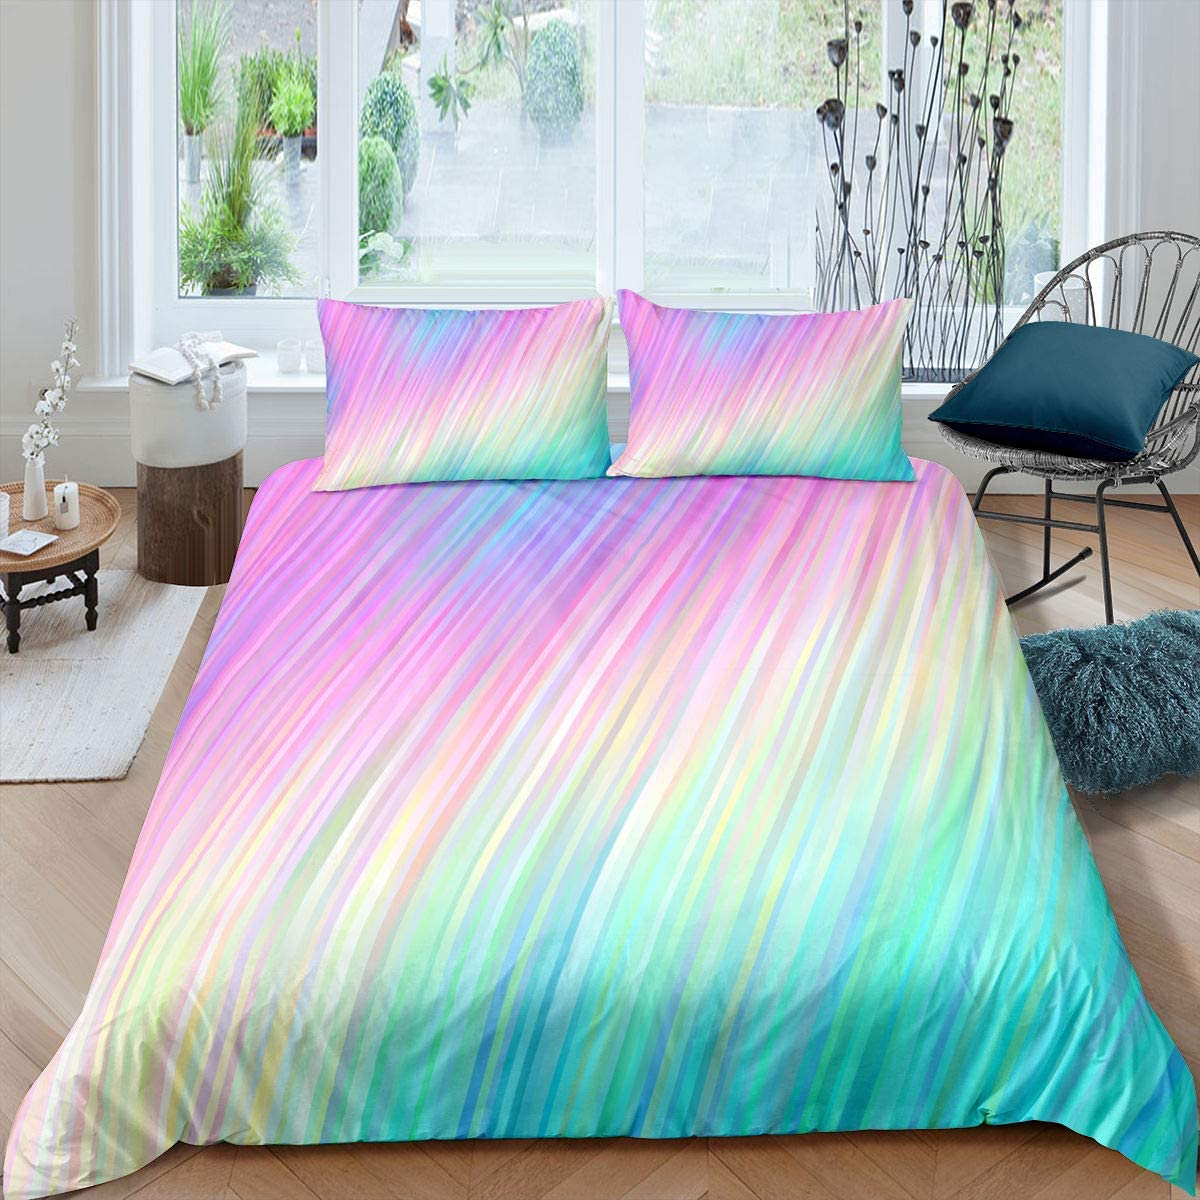 Amazon Com Colorful Marble Duvet Cover Full Size Girls Rainbow Color Pattern Bedroom Decor Bedding Set Full Size Abstract Stripe Printed Decor Comforter Cover With Zipper Ties 1 Duvet Cover With 2 Pillow Cases